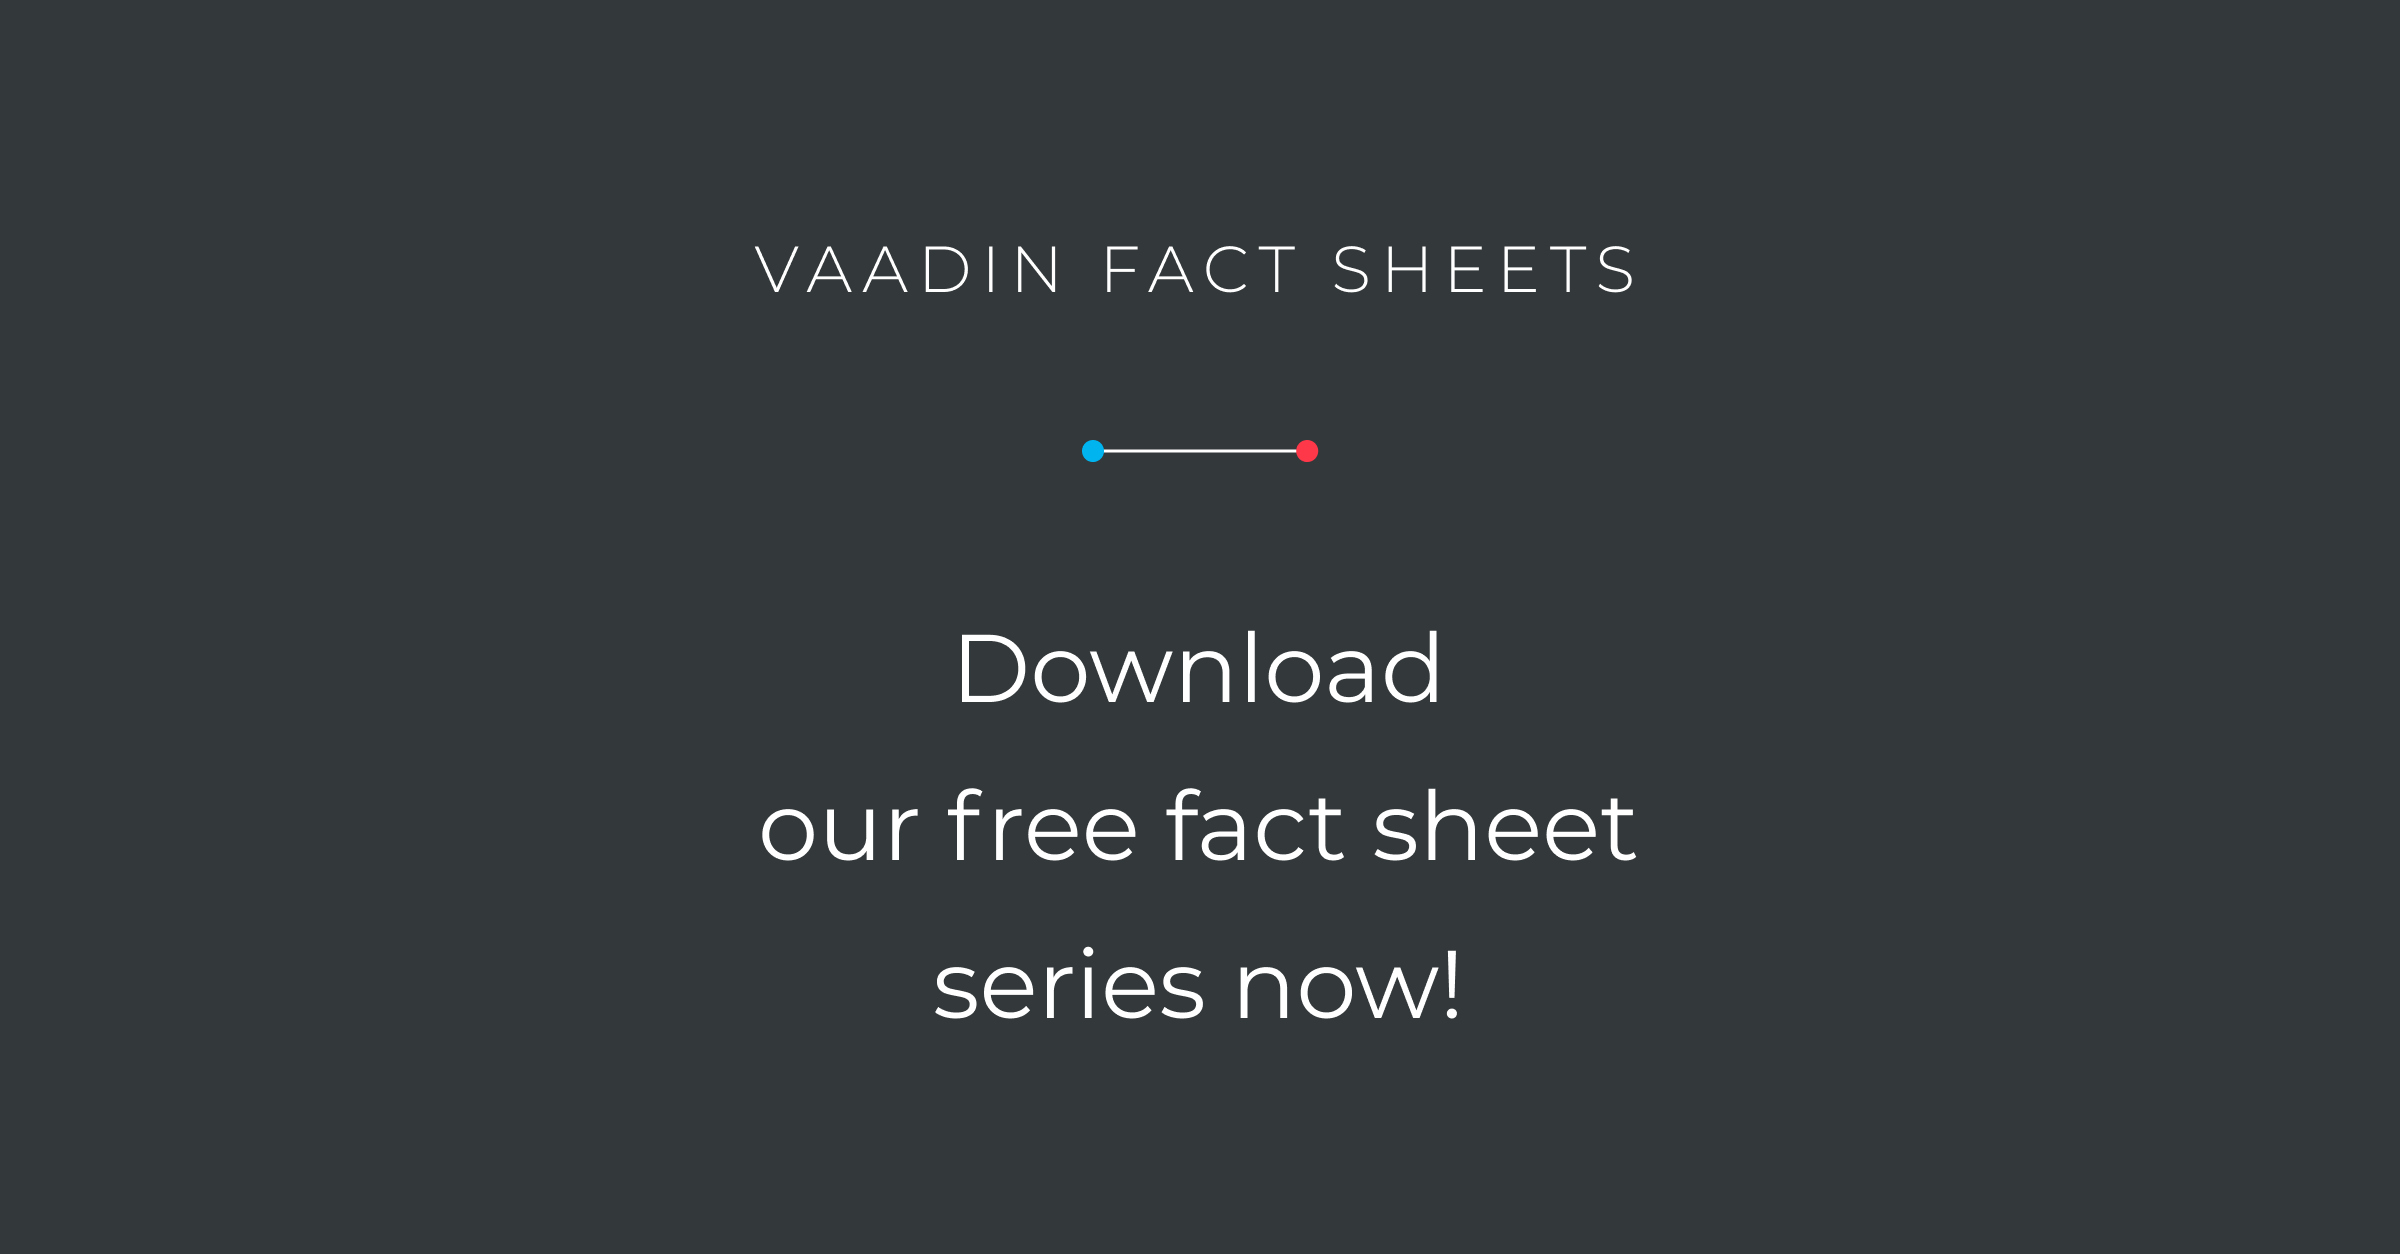 Free fact sheets introducing Vaadin and its features